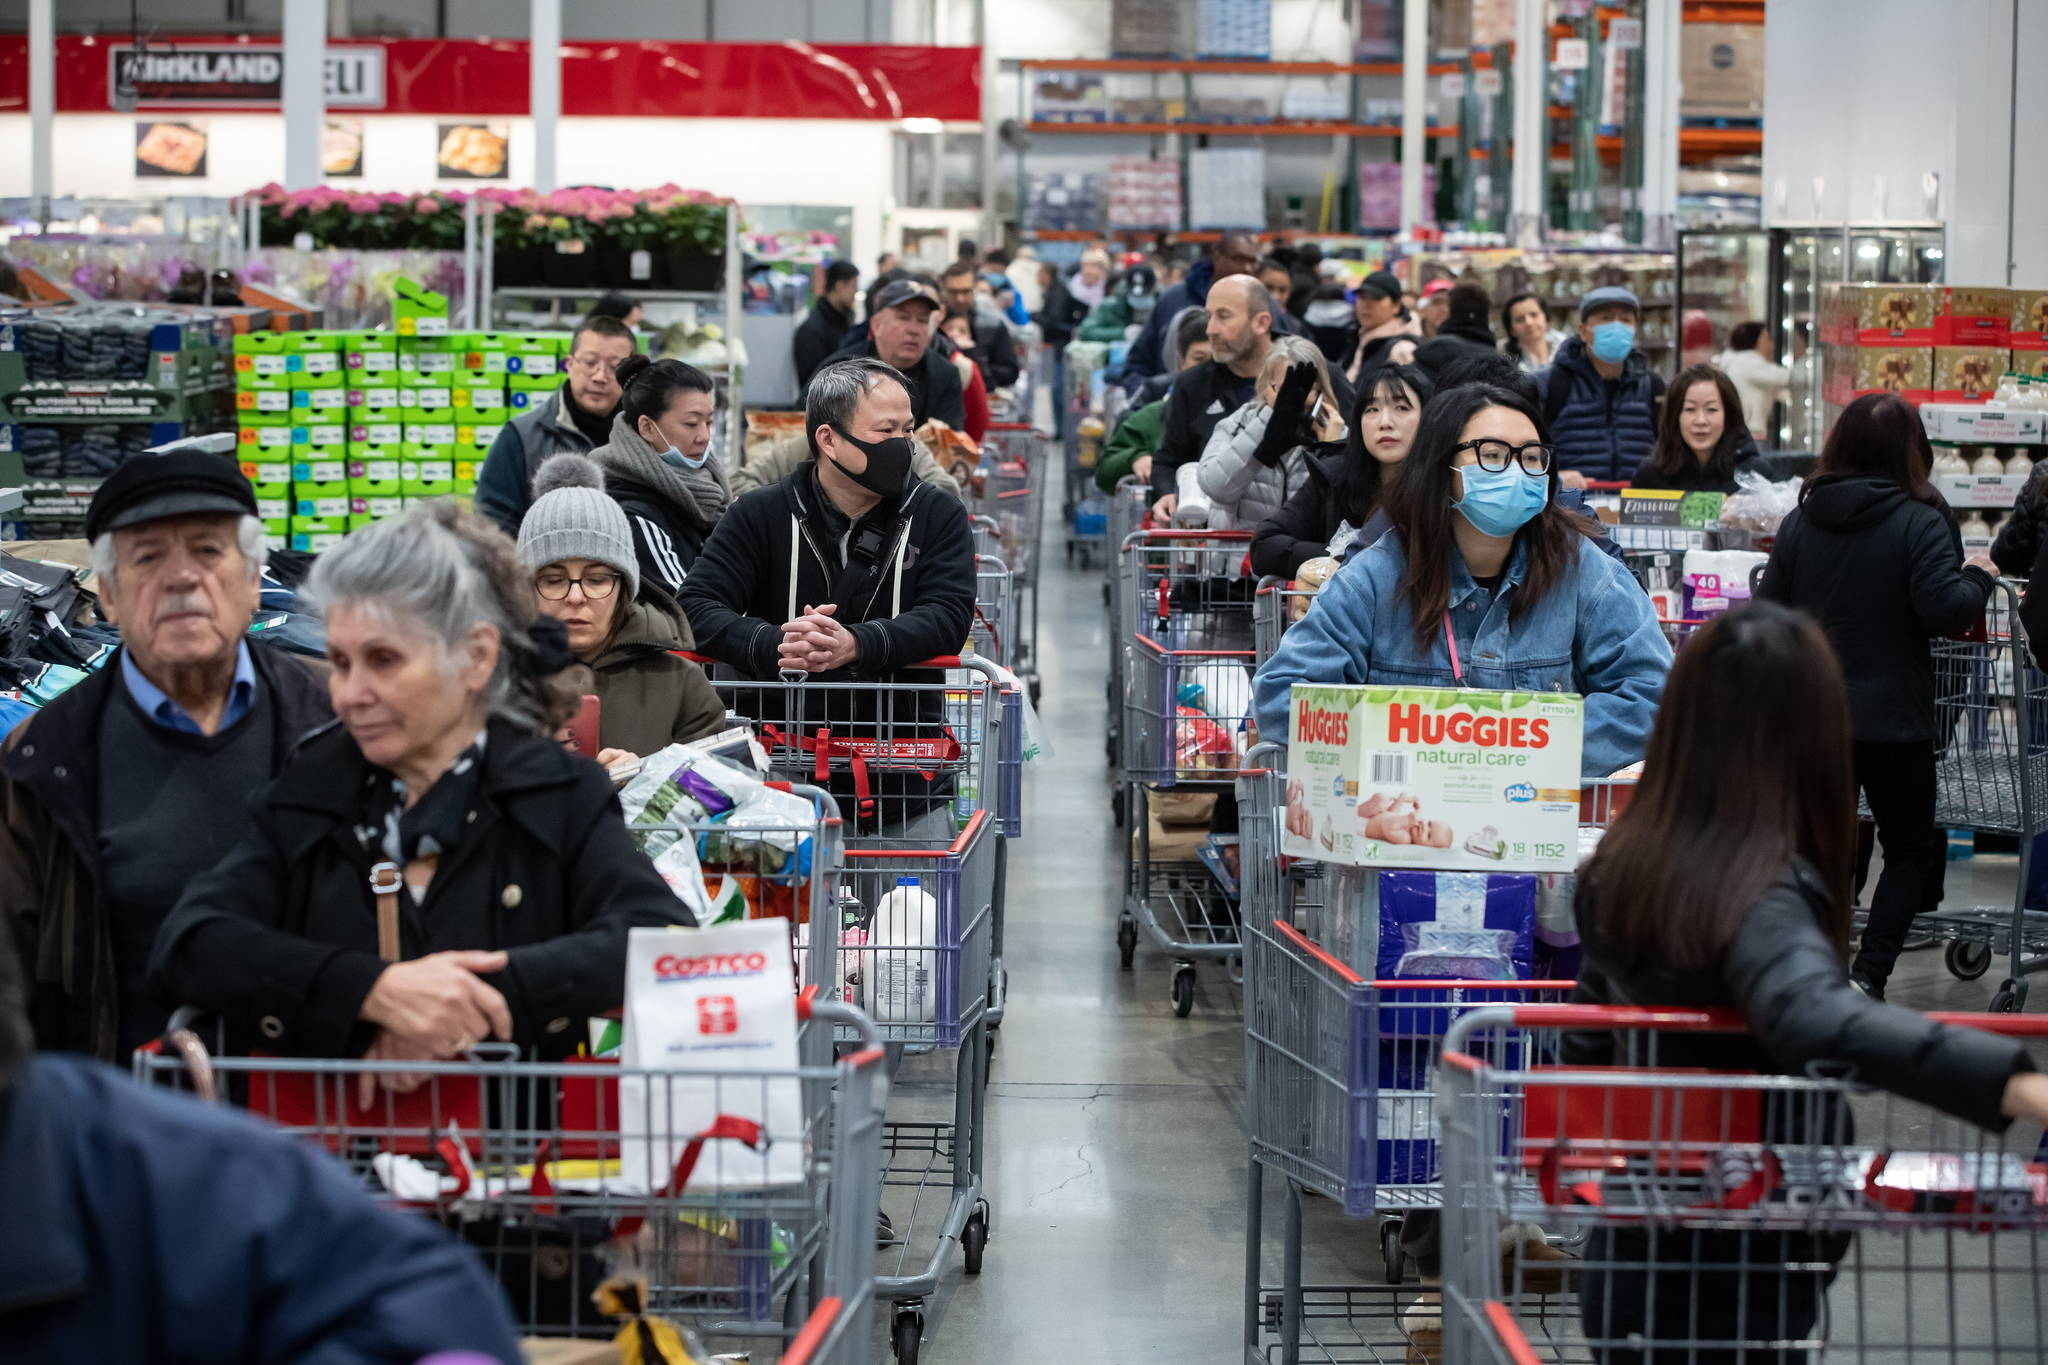 Hundreds of people queued in multiple lines waiting to pay for their purchases at a Costco store, amid concerns about the spread of the coronavirus, in Burnaby on March 16. (THE CANADIAN PRESS/Darryl Dyck)